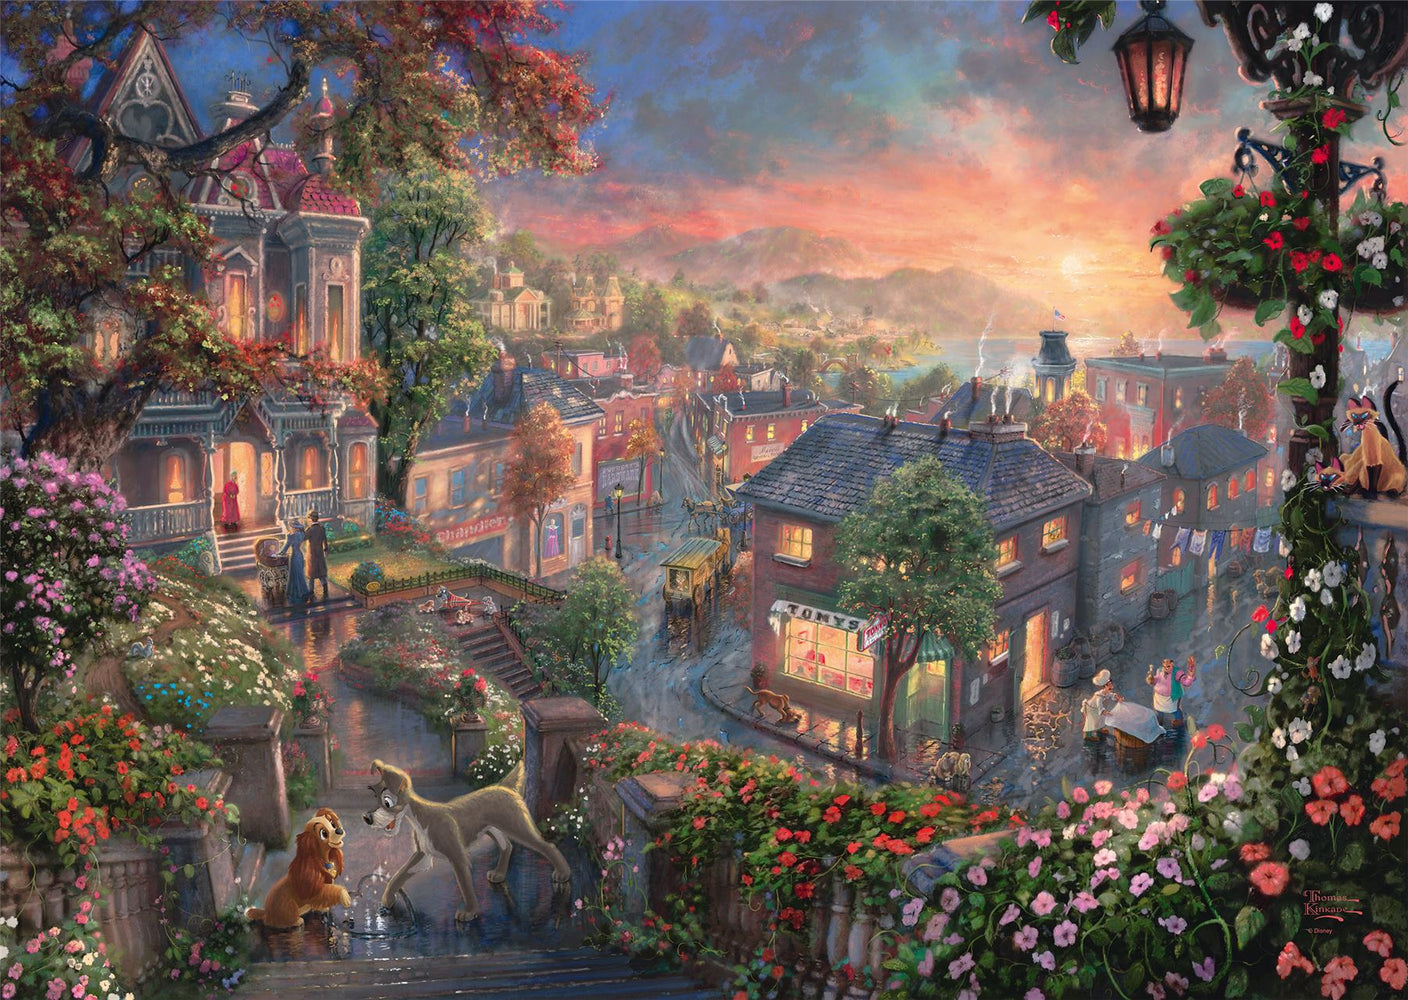 Thomas Kinkade - Disney Lady and the Tramp 1000 Pieces Jigsaw Puzzle - All Jigsaw Puzzles